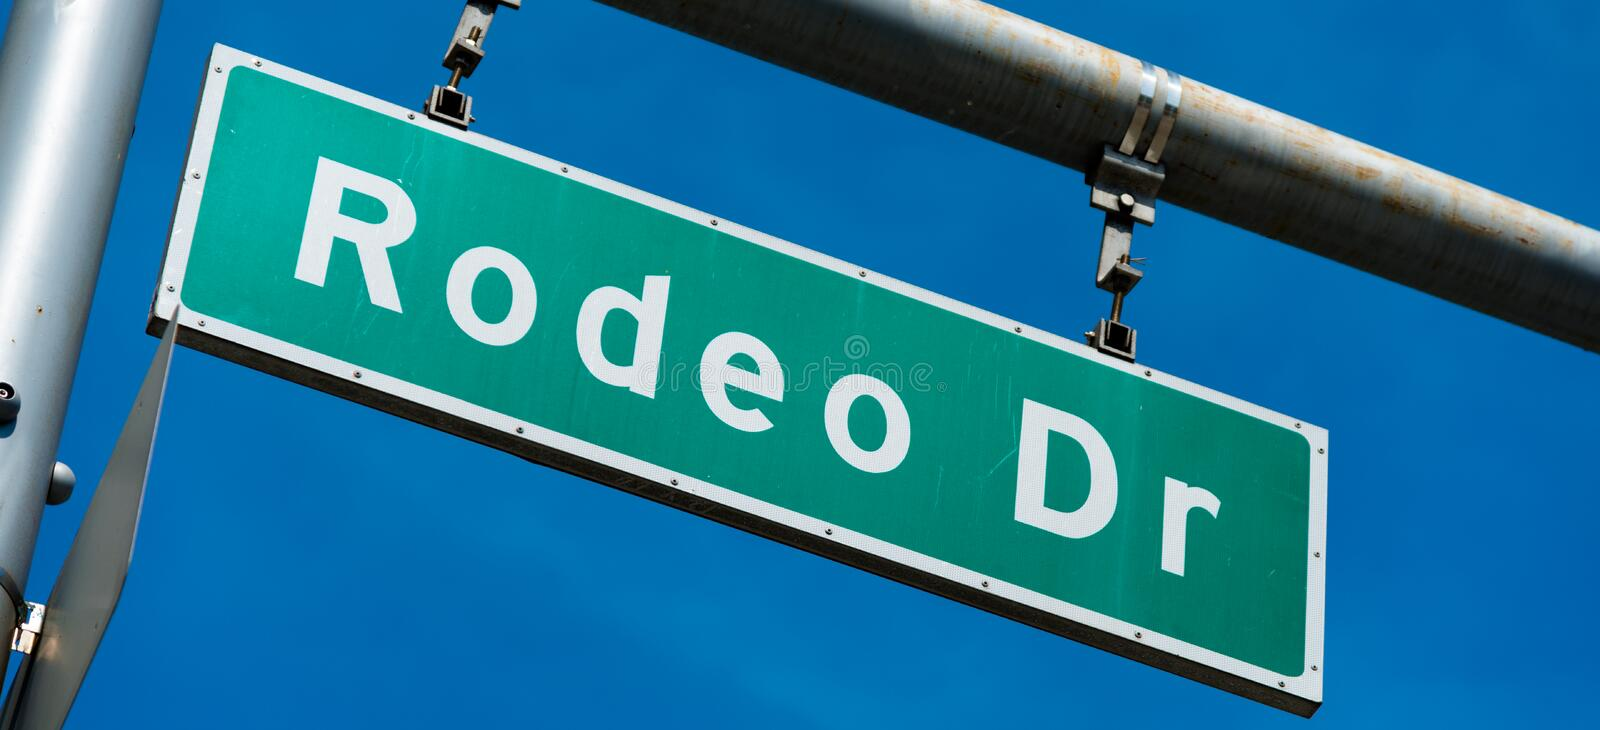 Rodeo Drive Beverly Hills Street Sign stock photography